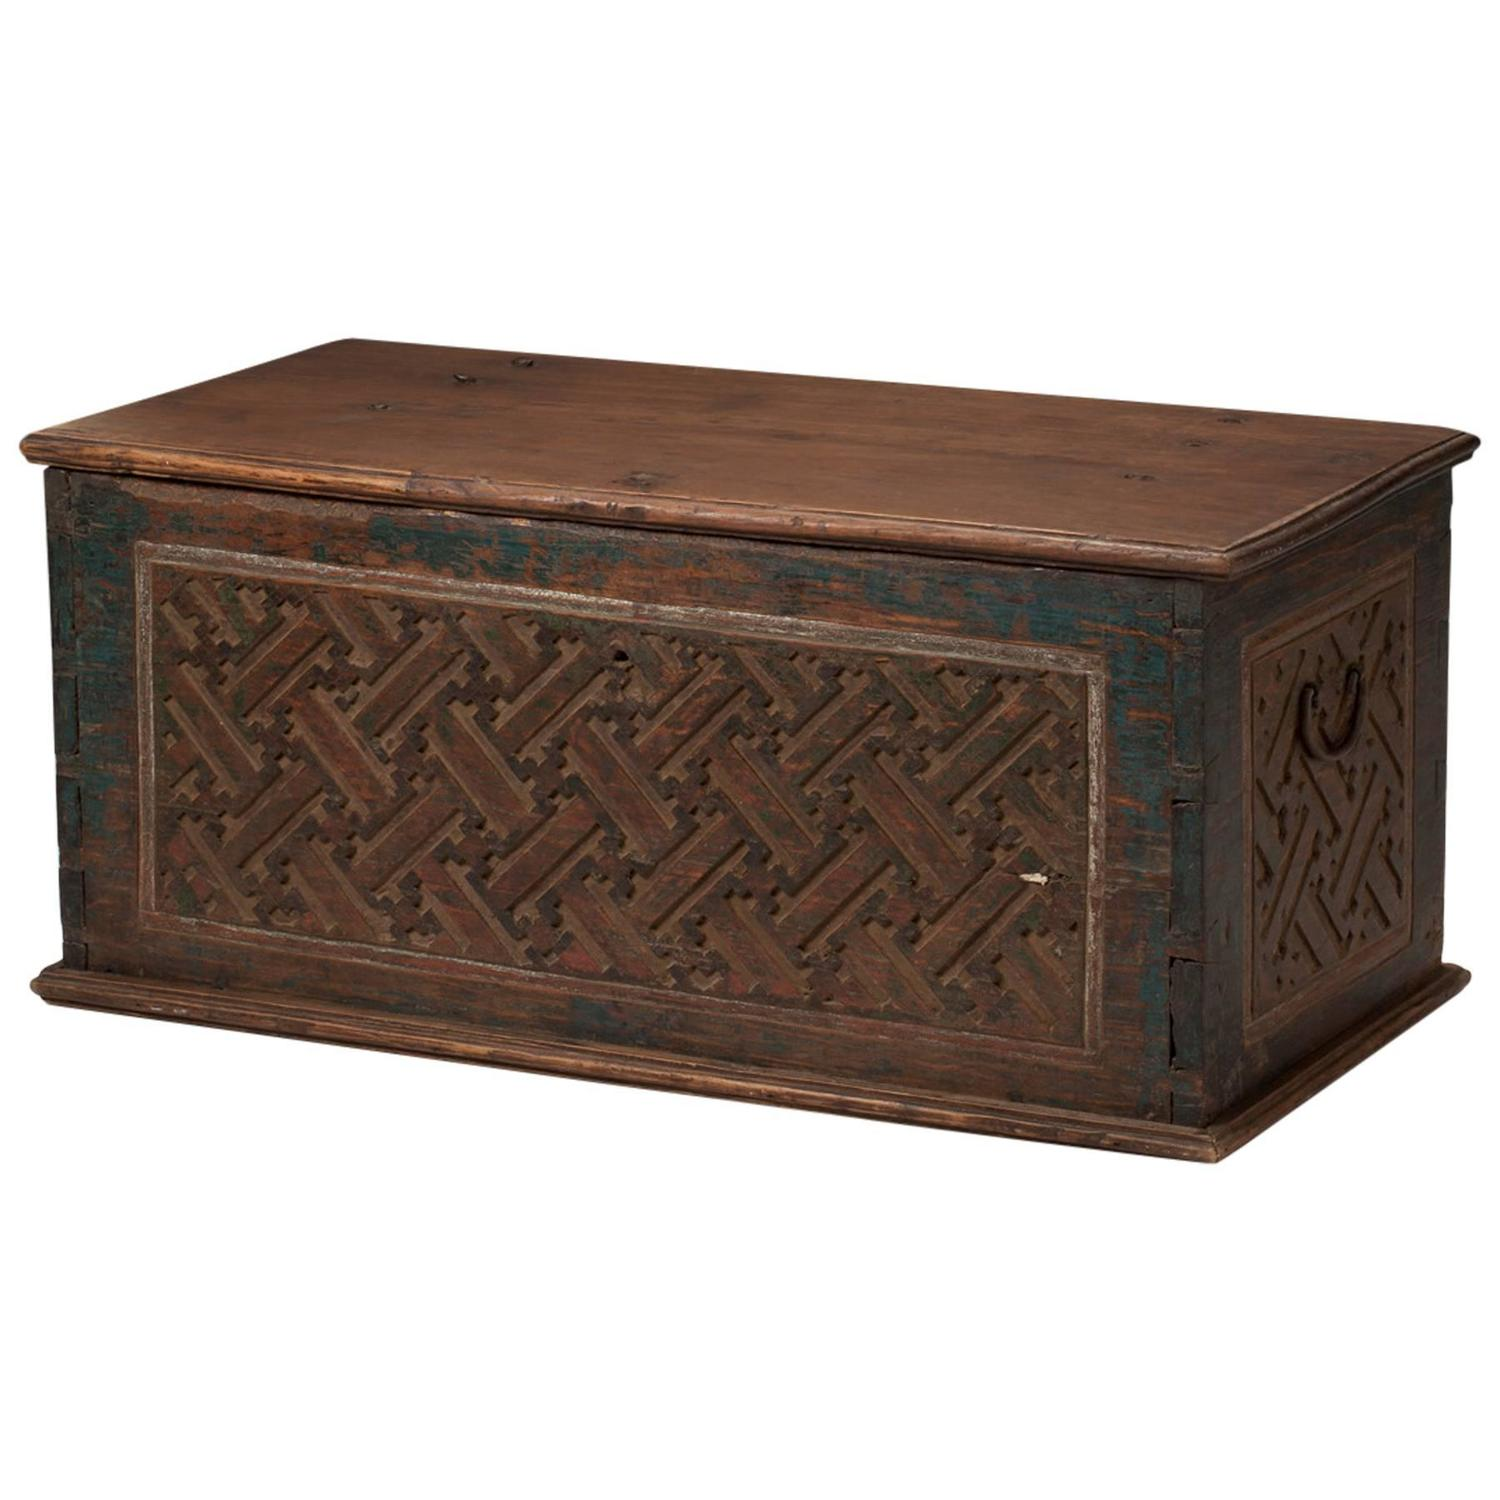 Antique Carved Box Indonesia 1920 For Sale At 1stdibs